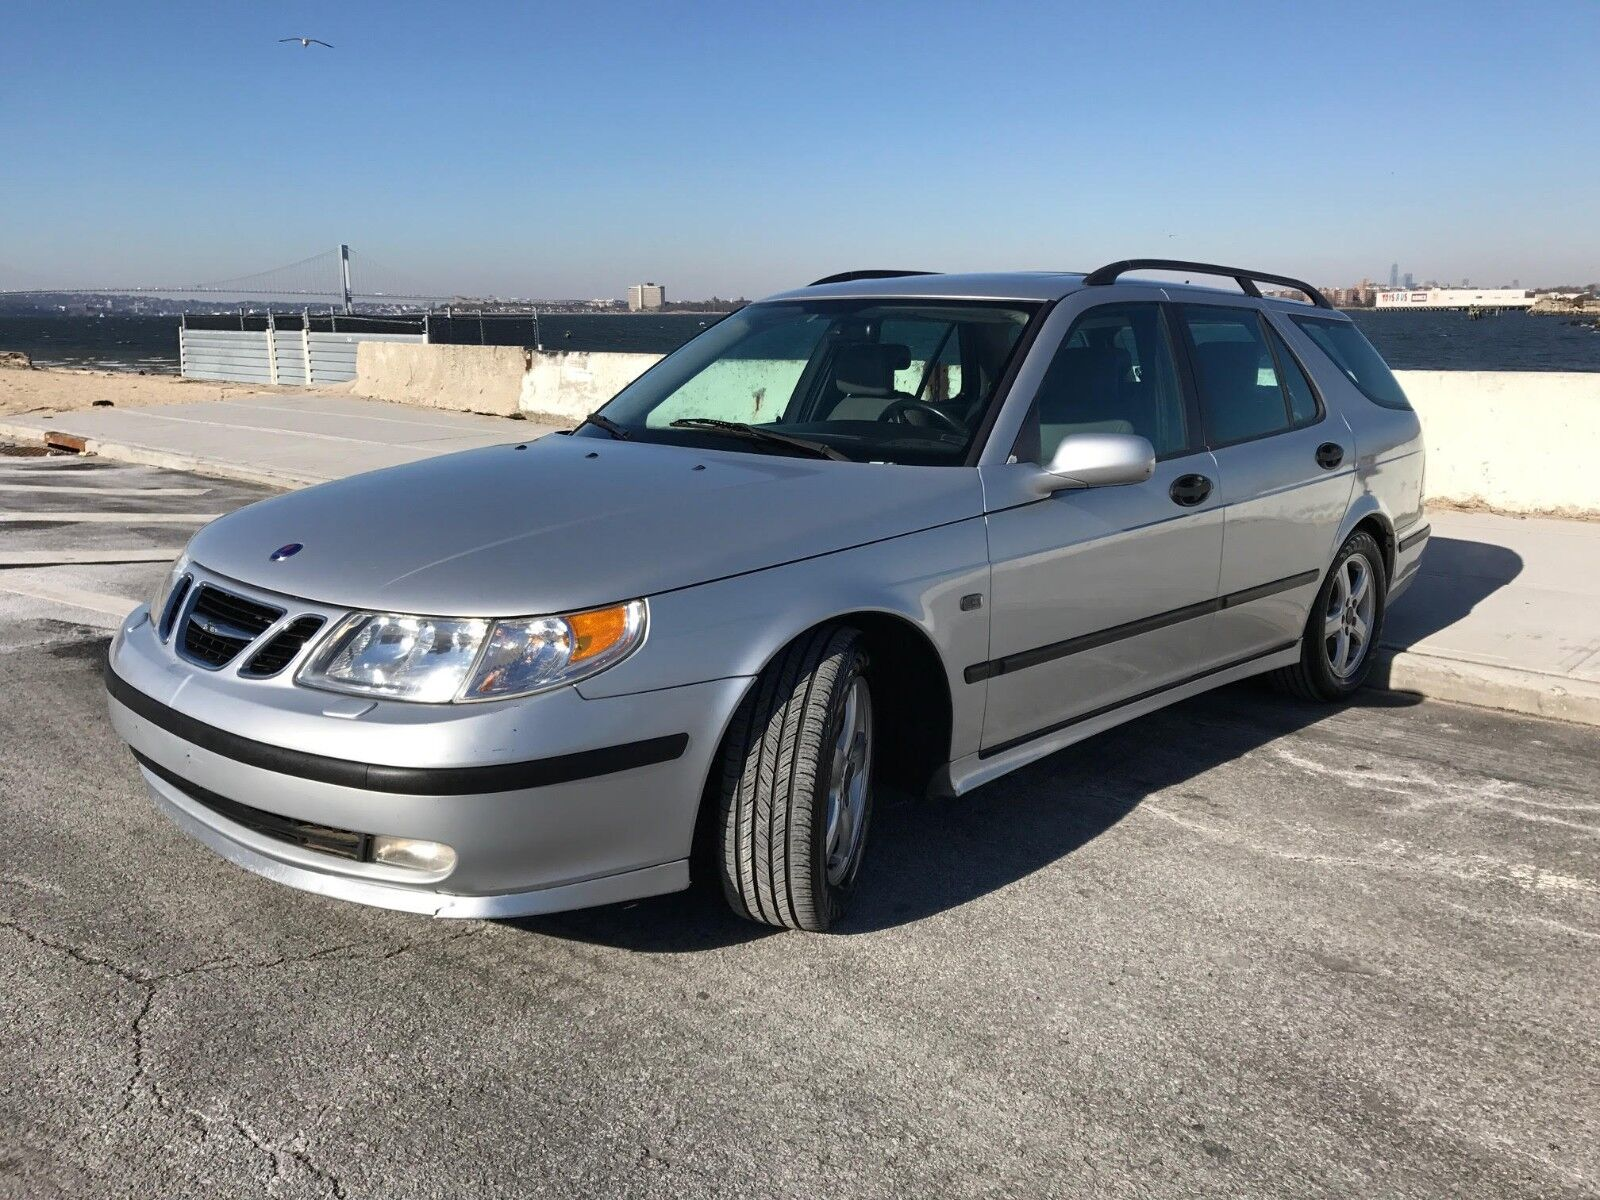 2004 Saab 9-5  2004 SAAB  9-5 LINEAR, LOW 96K MILES, 2 OWNERS,NICE SPORTY WAGON !